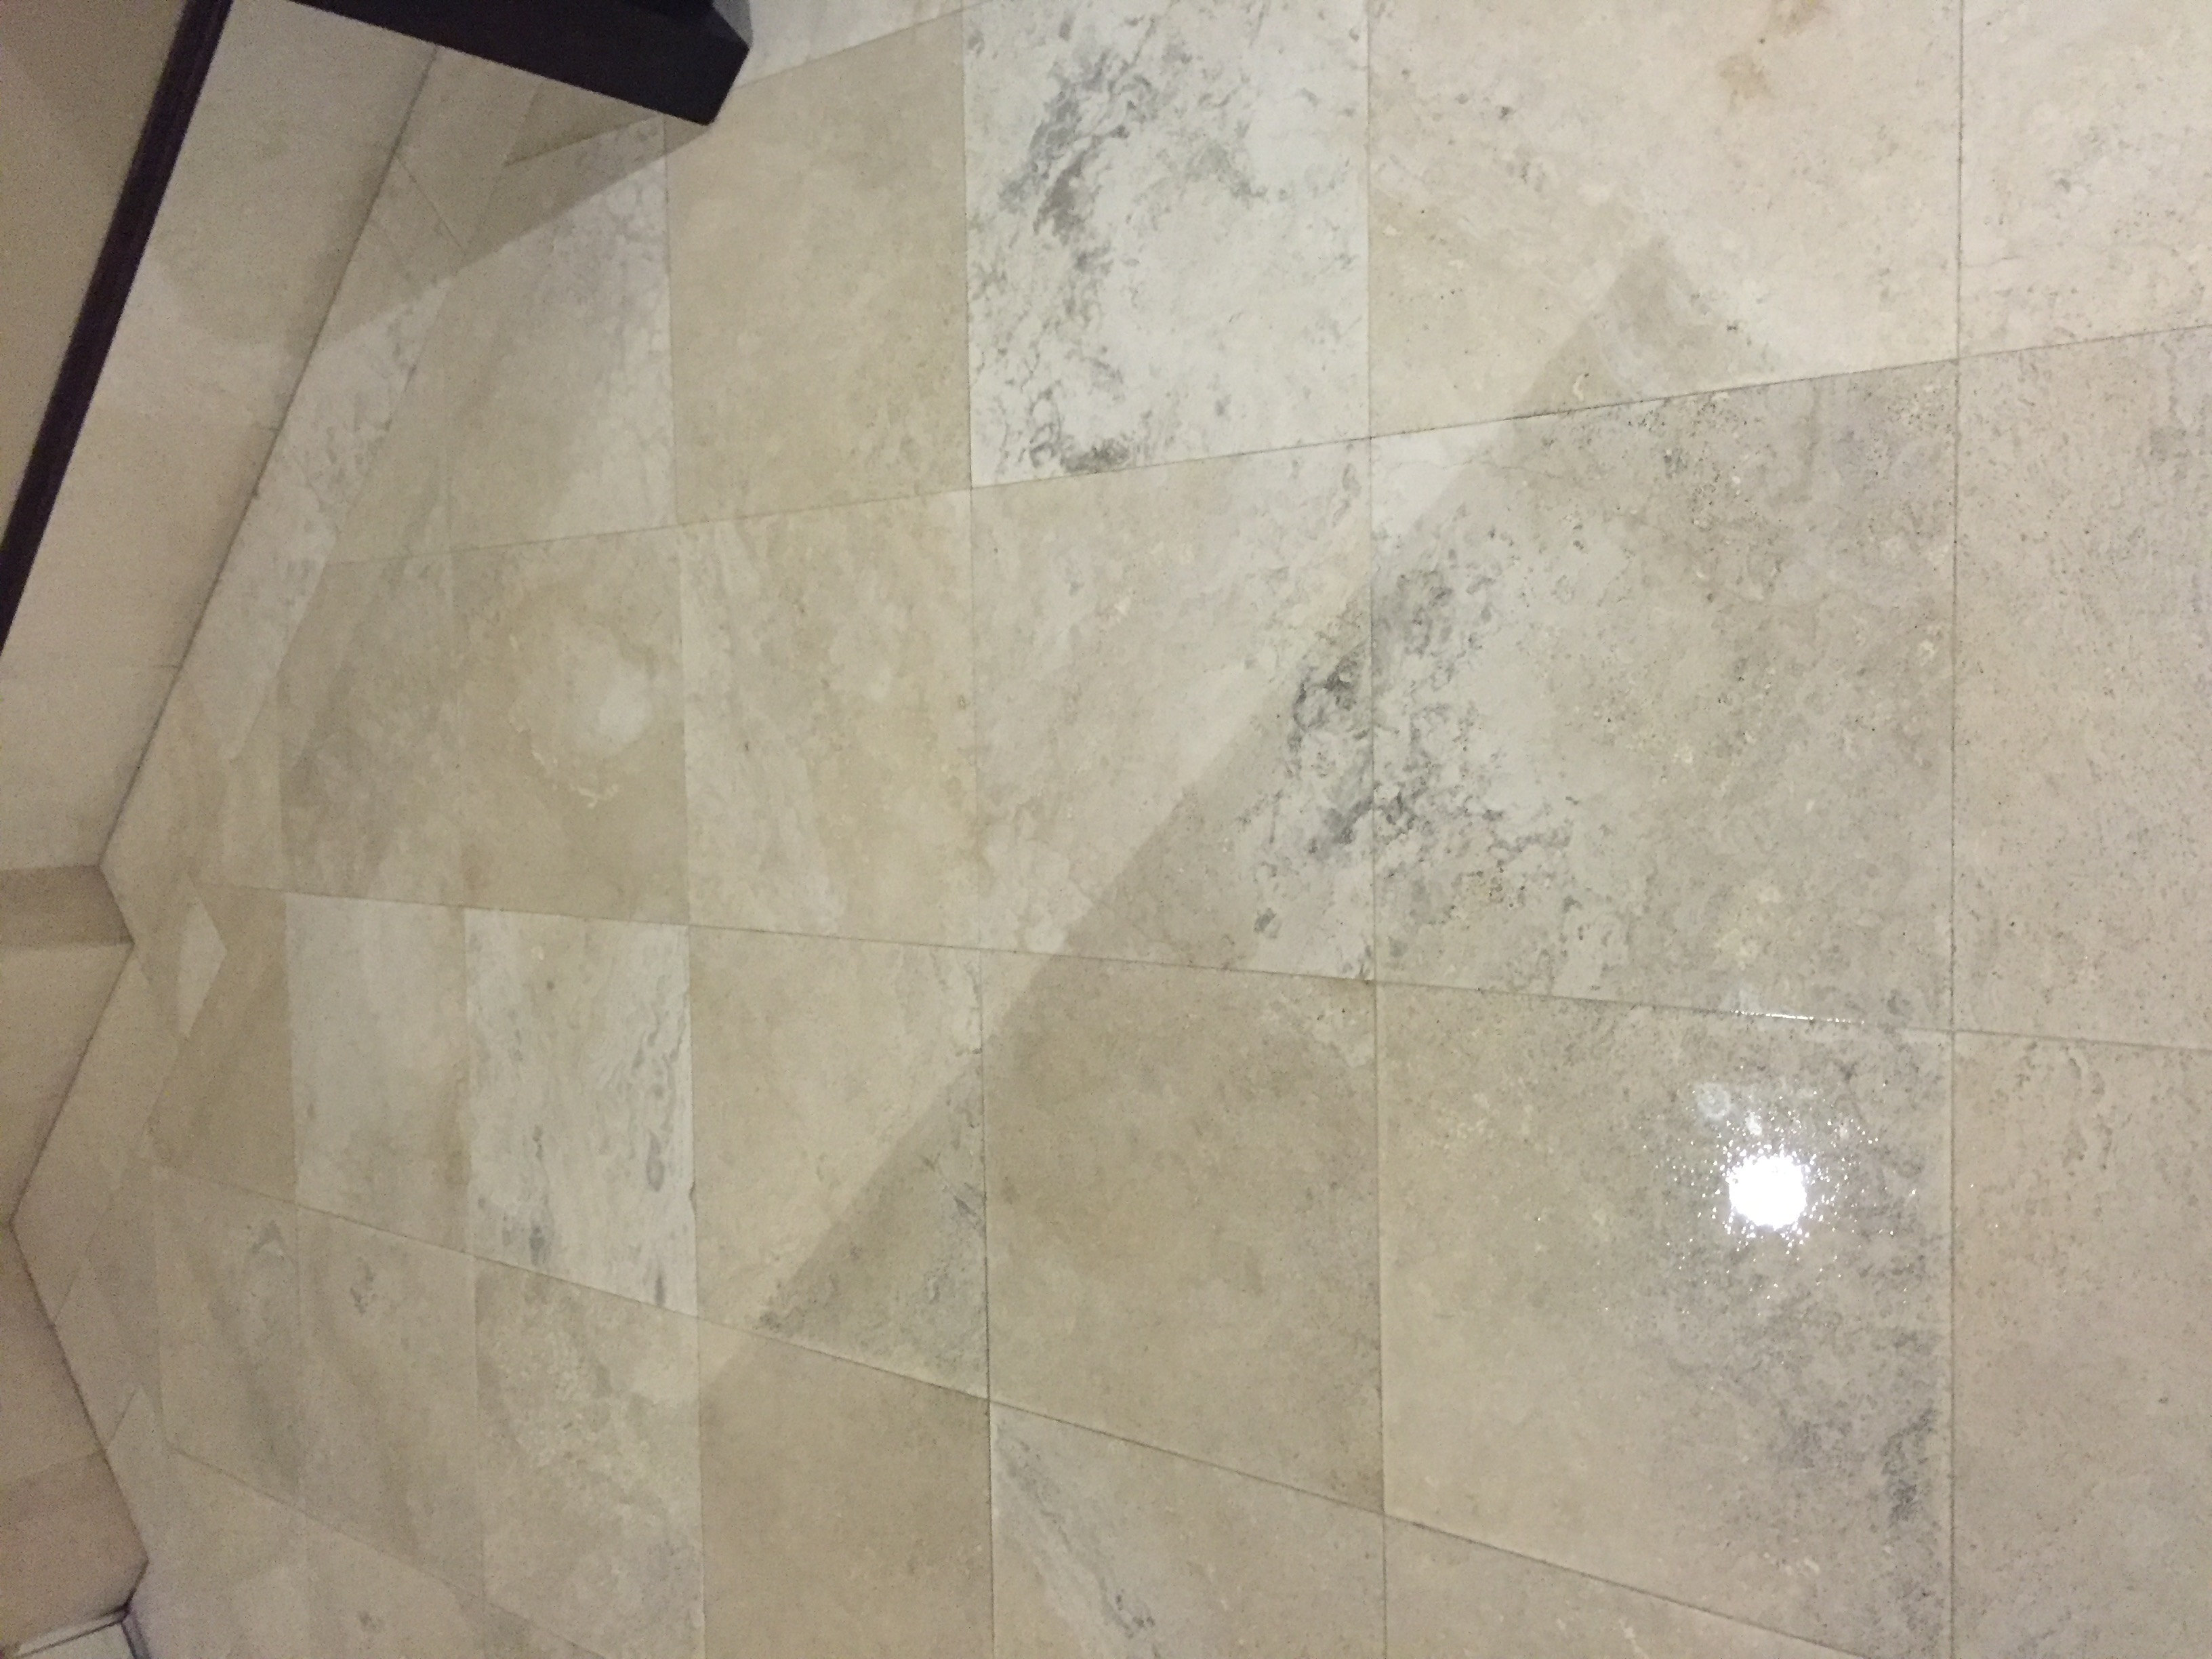 Naples Stone Floor Cleaning Companies Jim Lytell Marble And Stone - How to polish marble floors by machine